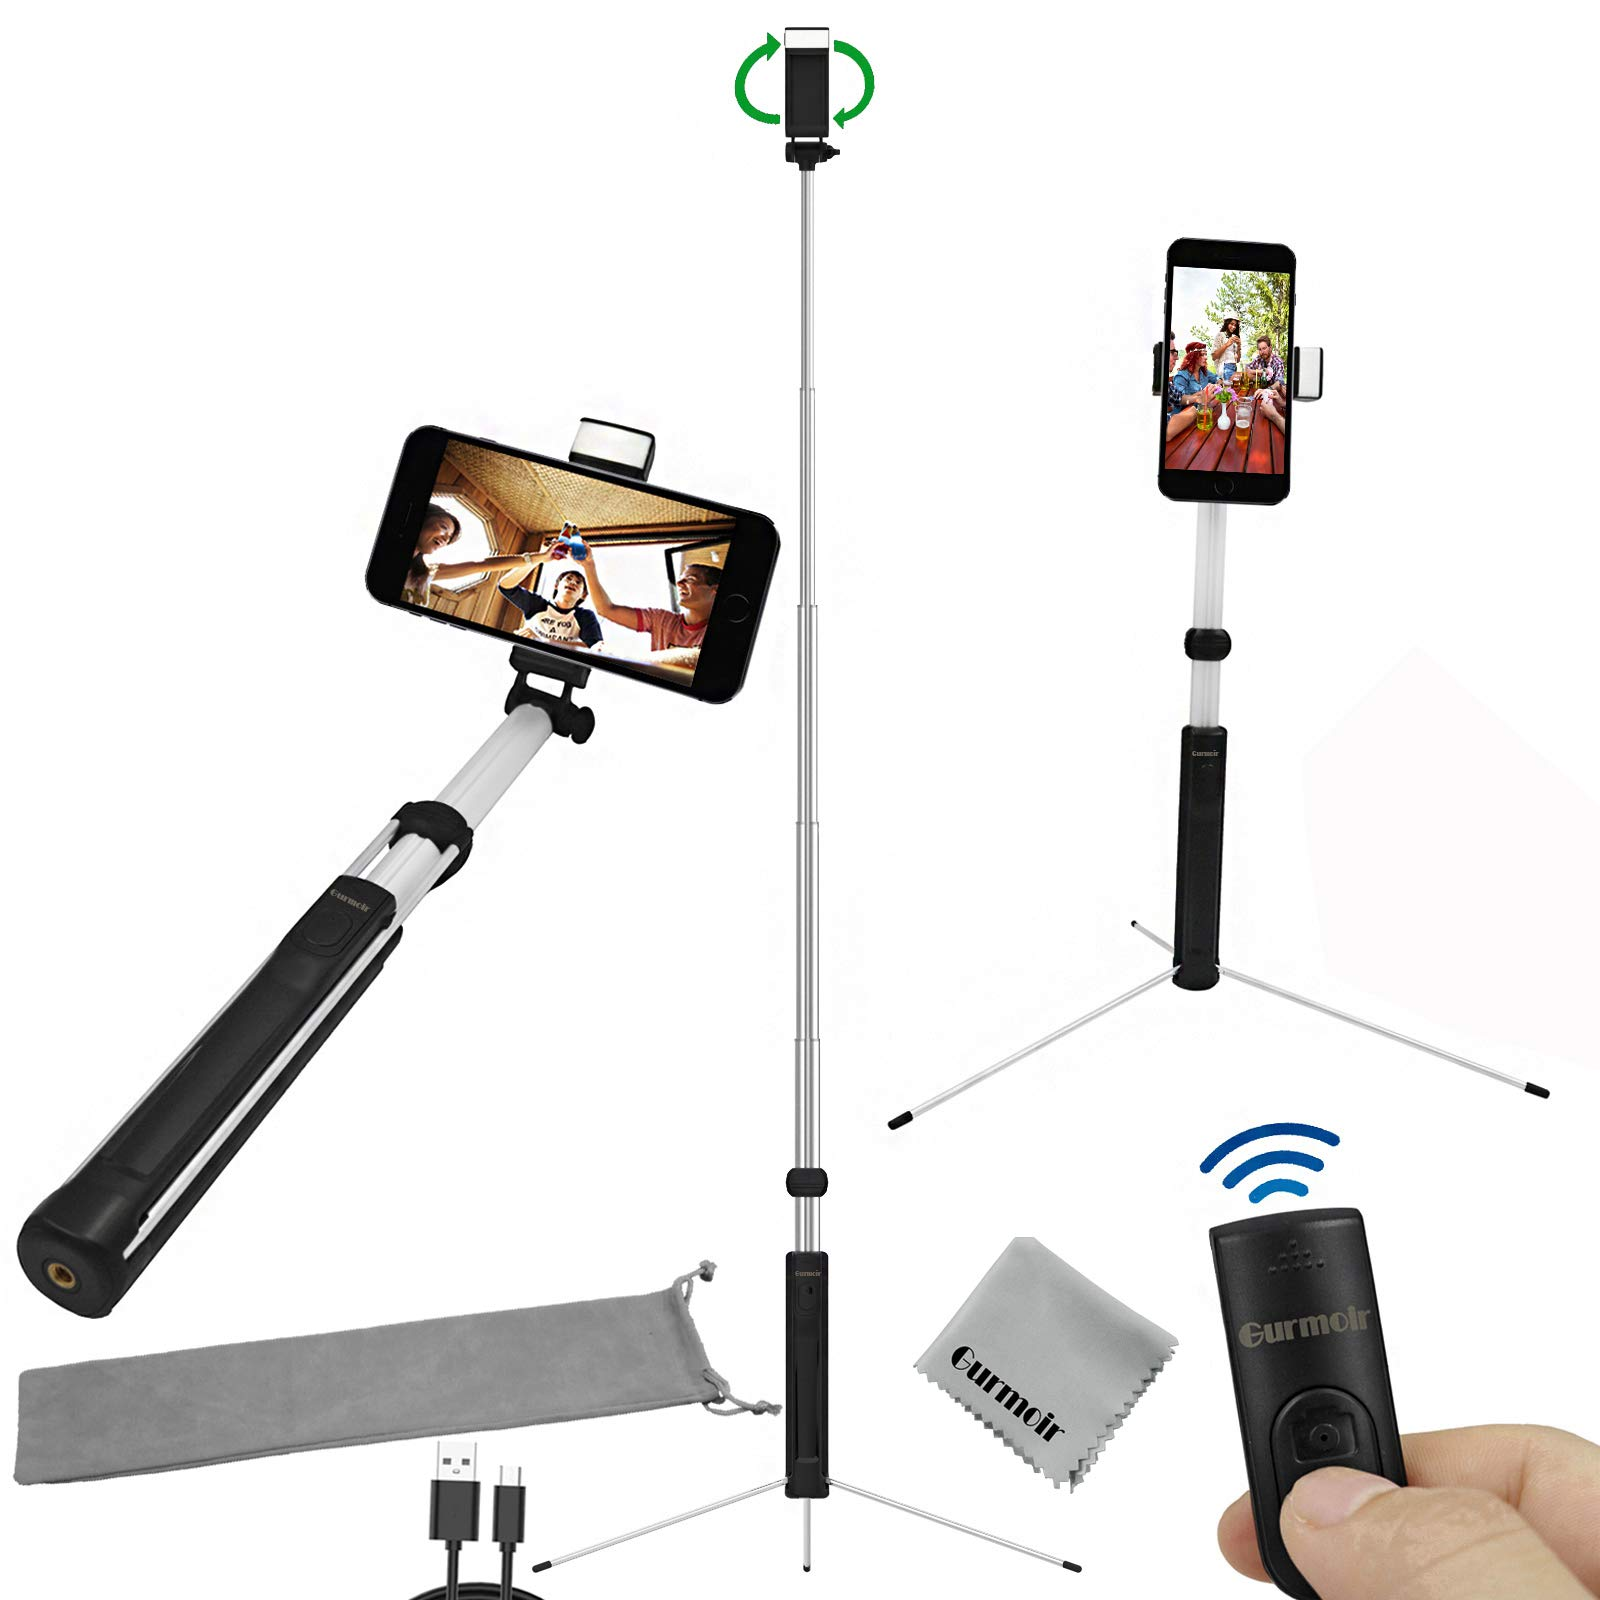 Gurmoir 60inch Extendable Bluetooth Selfie Stick Tripod Stand with Wireless Remote with Fill Light for iPhone 8 Plus/8/7/6 Plus/XS/XR/XS MAX/Galaxy S9/S9 Plus/Note 8/S8/S8 Plus and More Mobile Phone